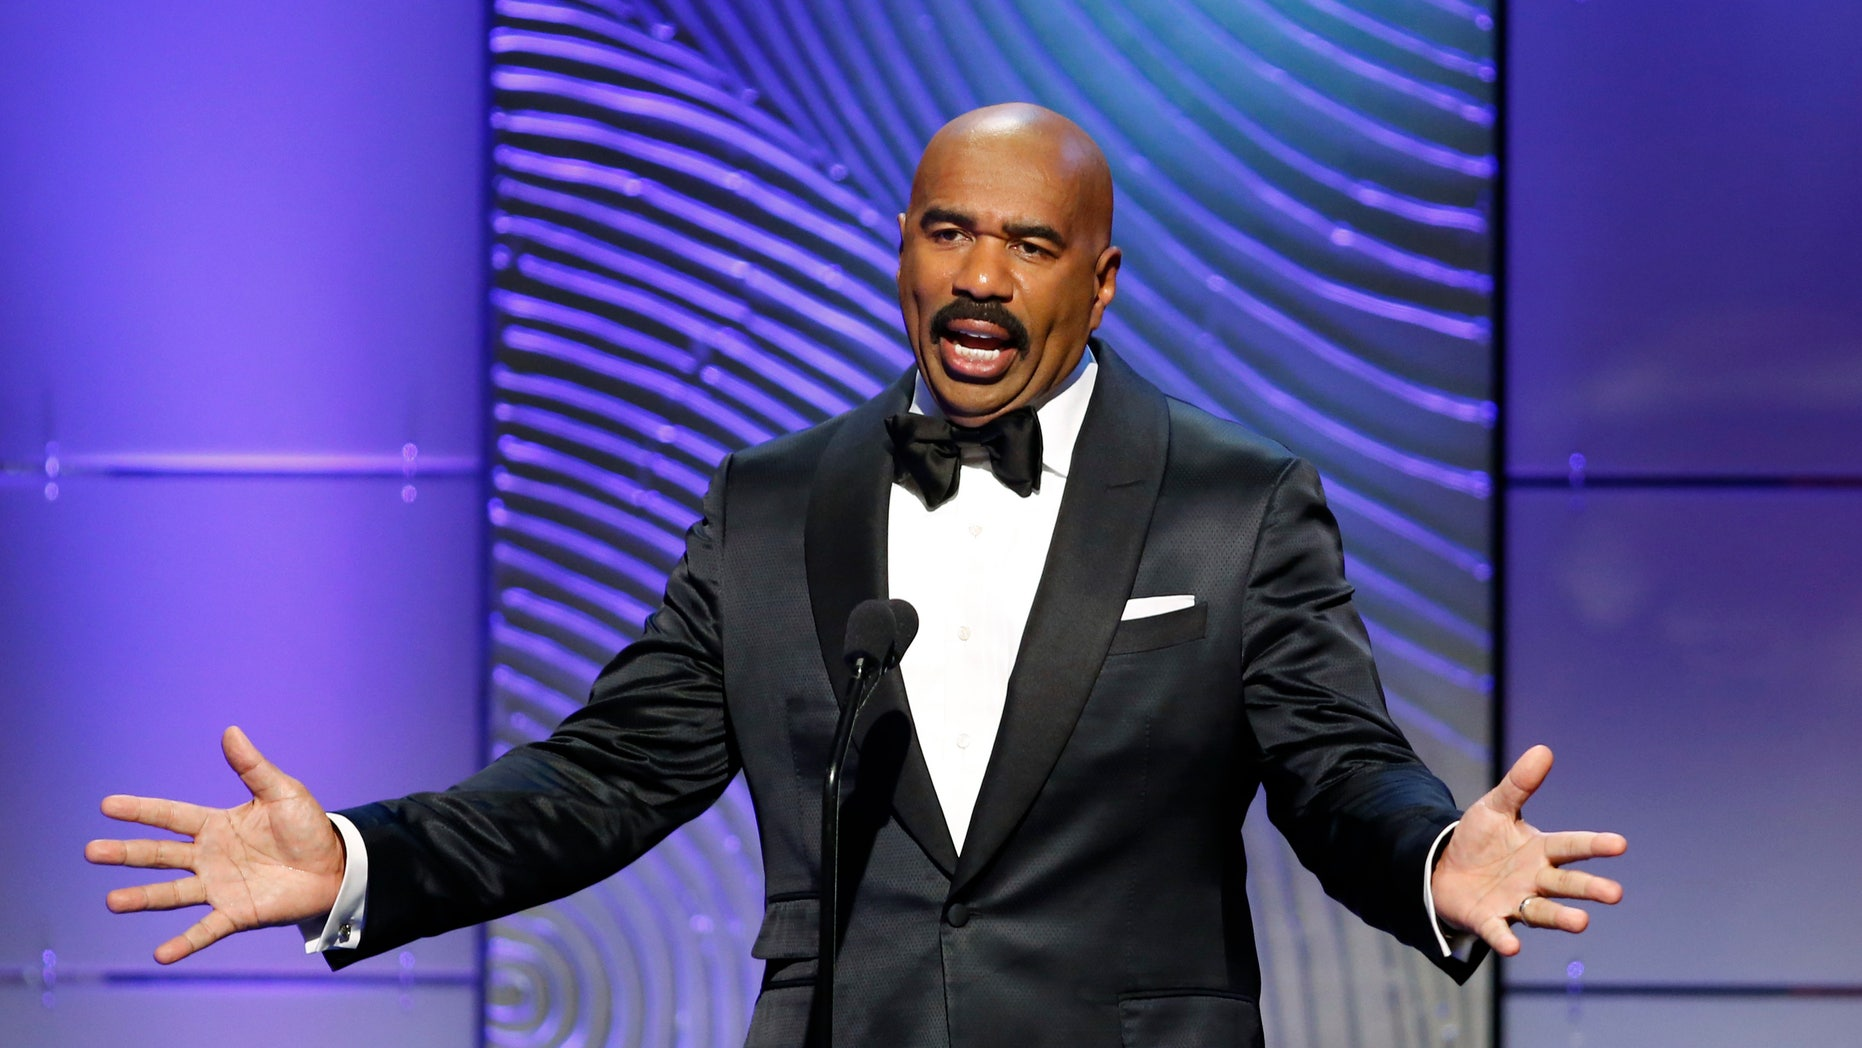 Steve Harvey shocked by crude 'Family Feud' answer | Fox News